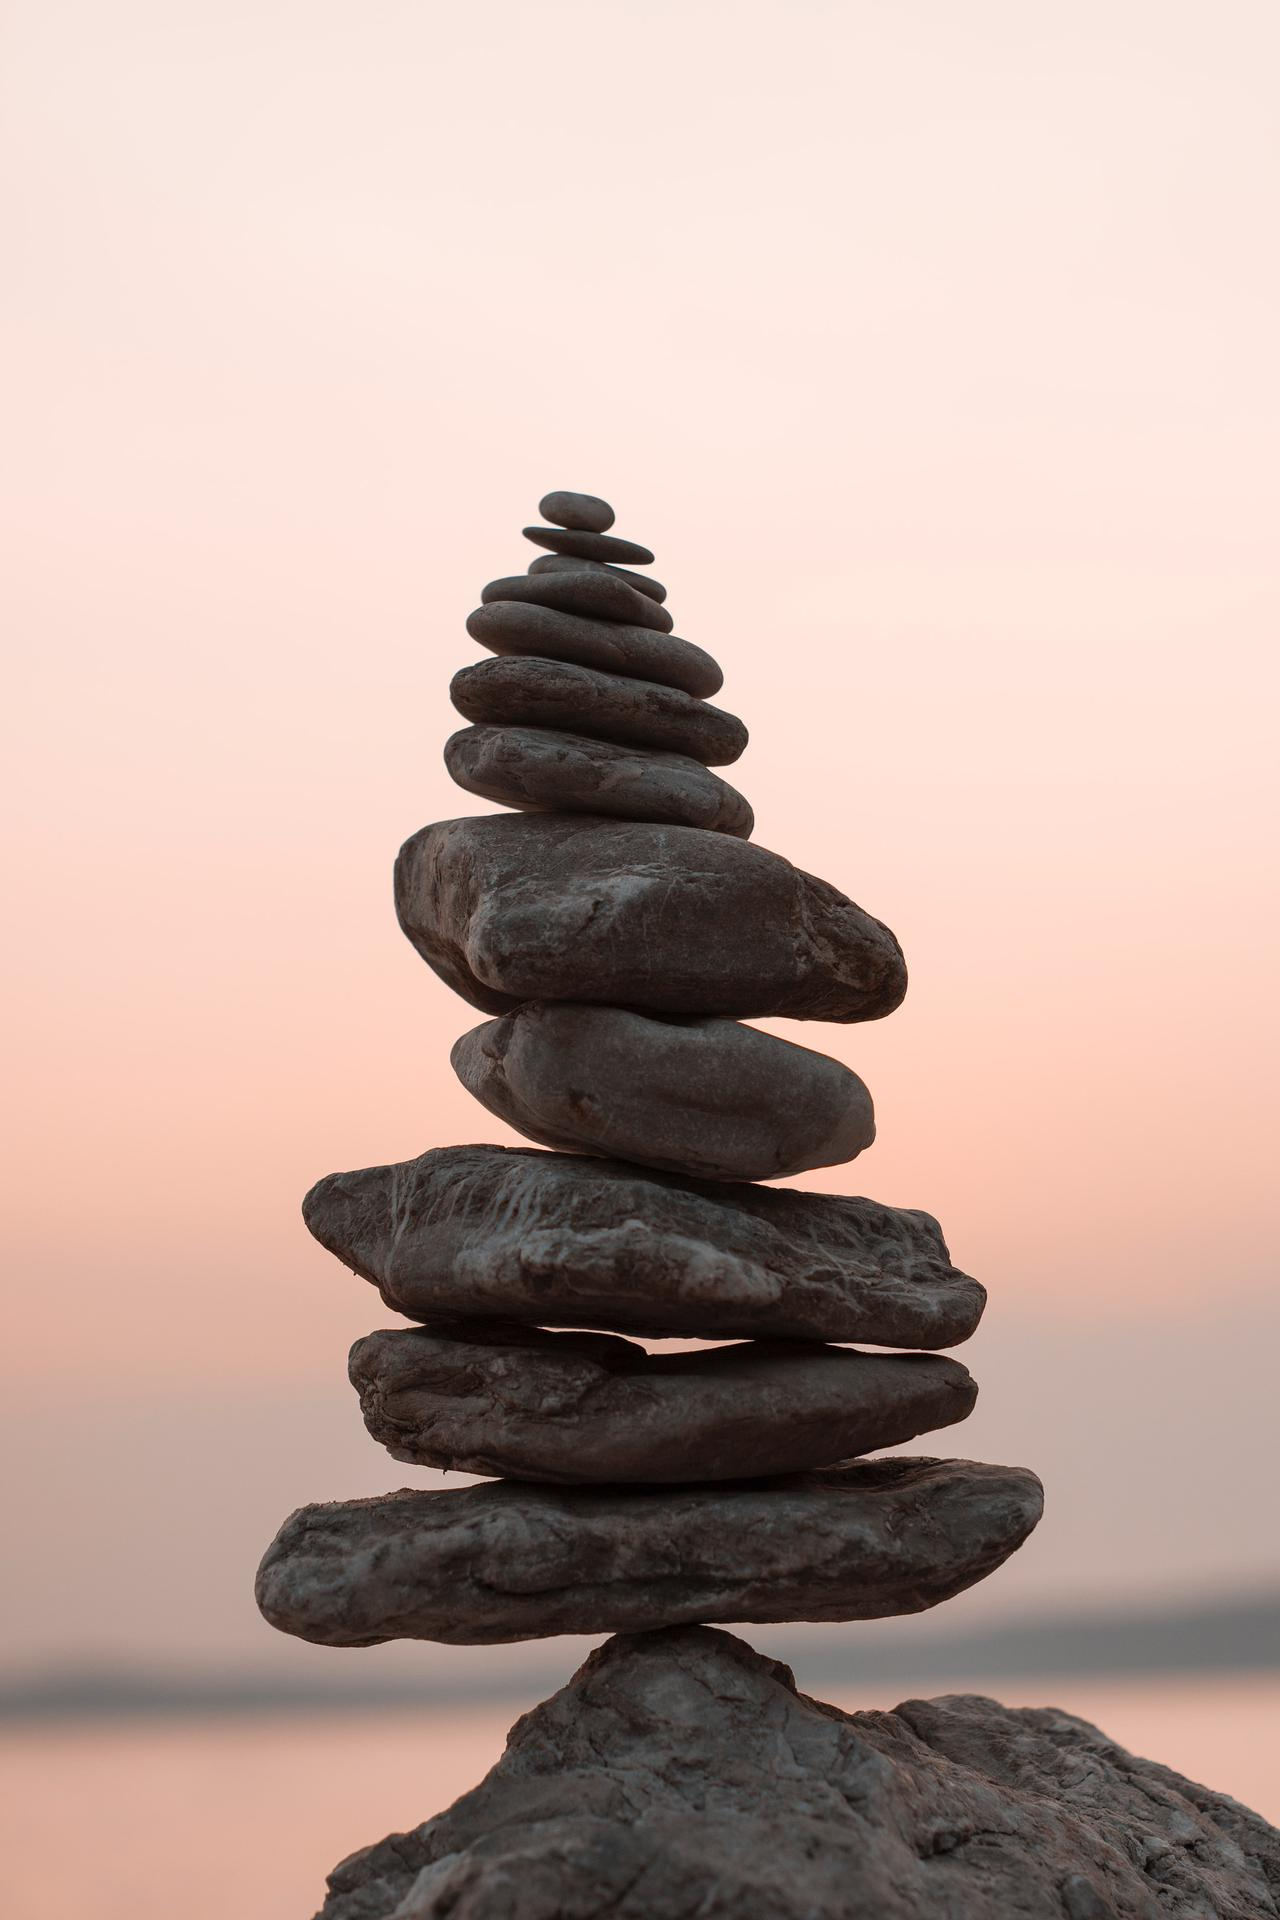 Find balance with Amla Healing Arts in Bergen County